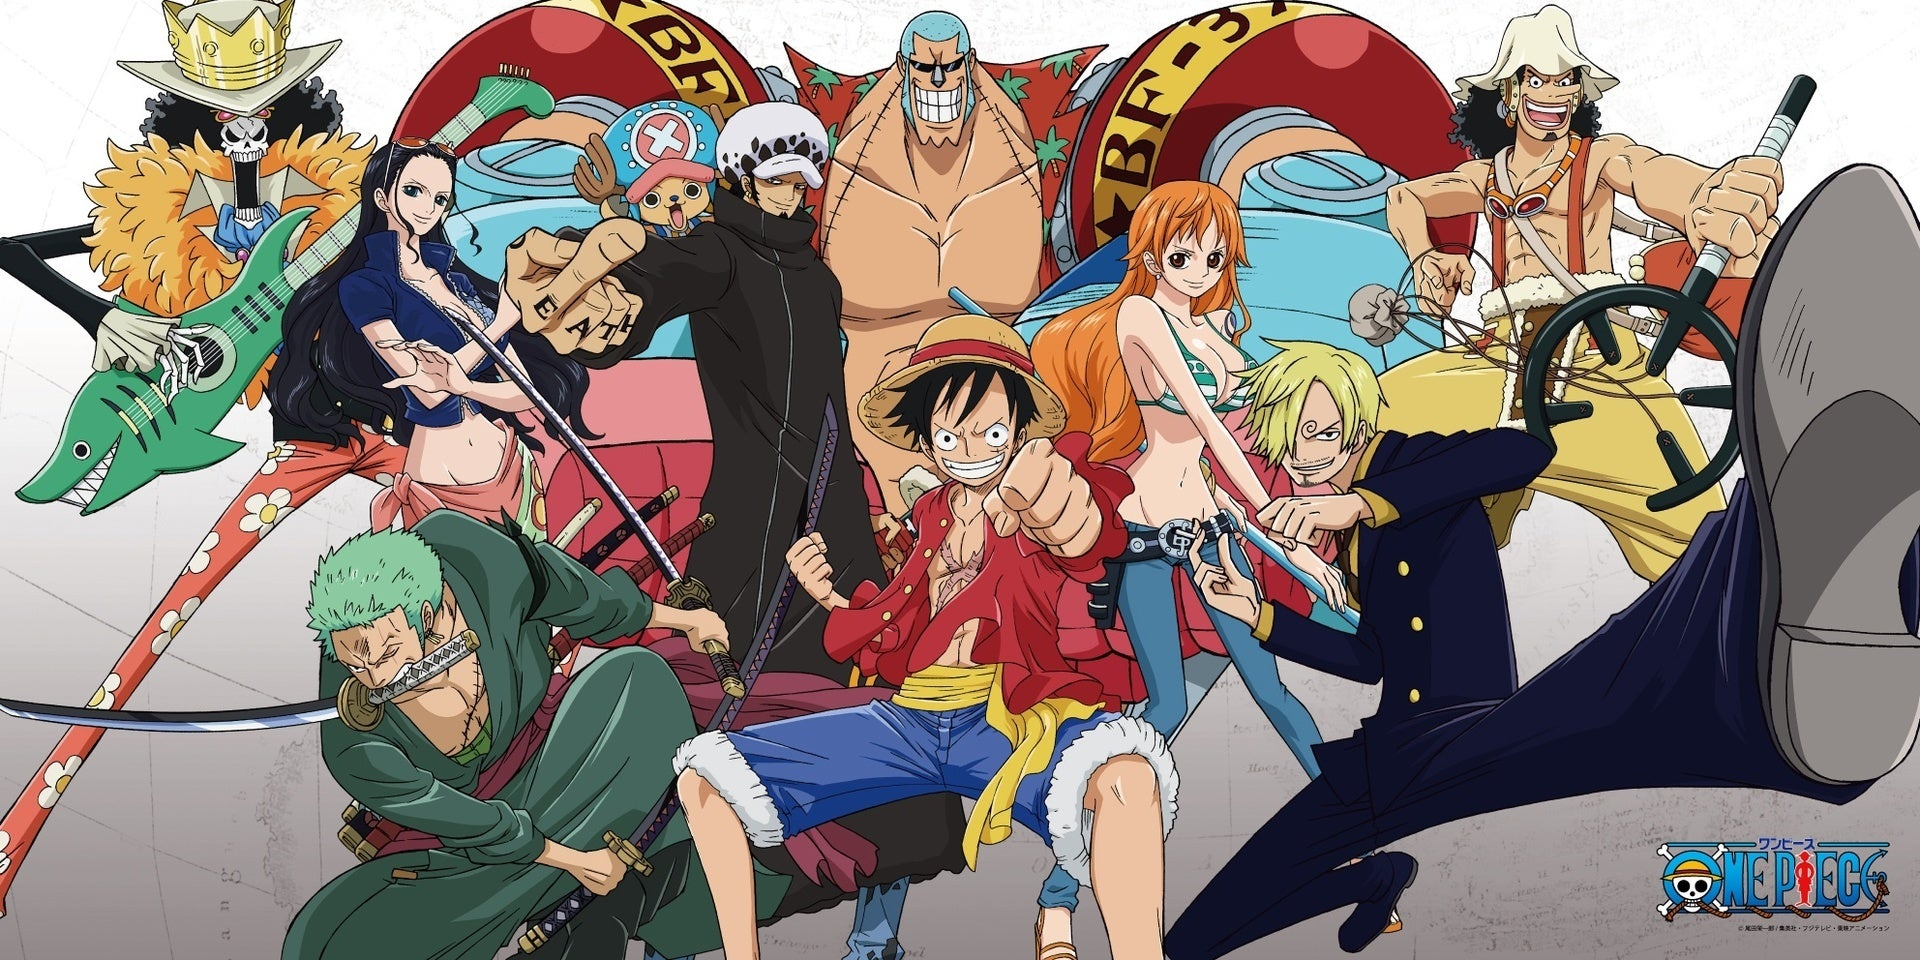 Poll: Has One Piece Gotten Worse? Most People Say 'No.'